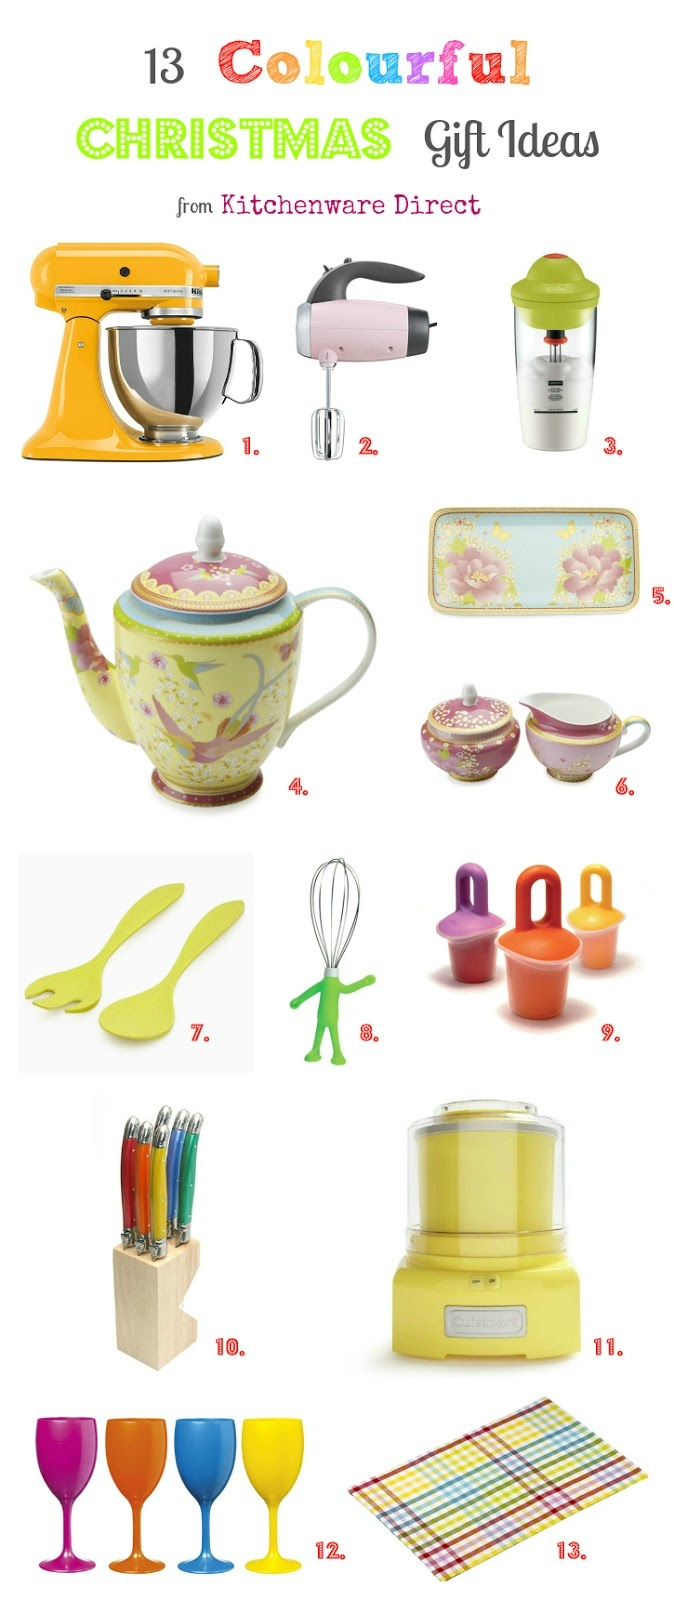 13 colourful gift ideas from @Kitchenware Direct